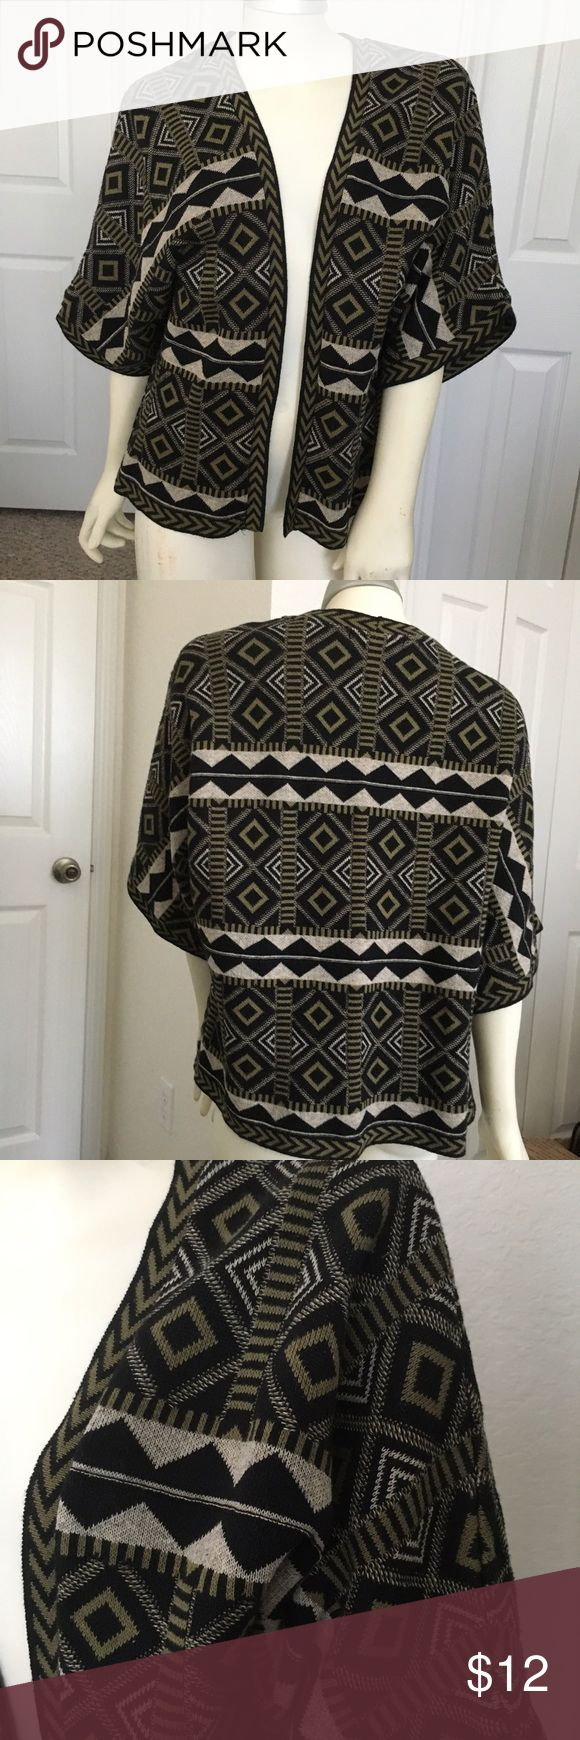 """BEAUTIFUL TRIBAL AZTEC VEST Atmosphere Tribal Aztec vest. Worn just once. Made in Romania. Size medium. Approximately 21""""length from armpit to the armpit. 21""""length from shoulder to the hem. No rips, tears or stain. In excellent condition atmosphare Jackets & Coats Vests"""